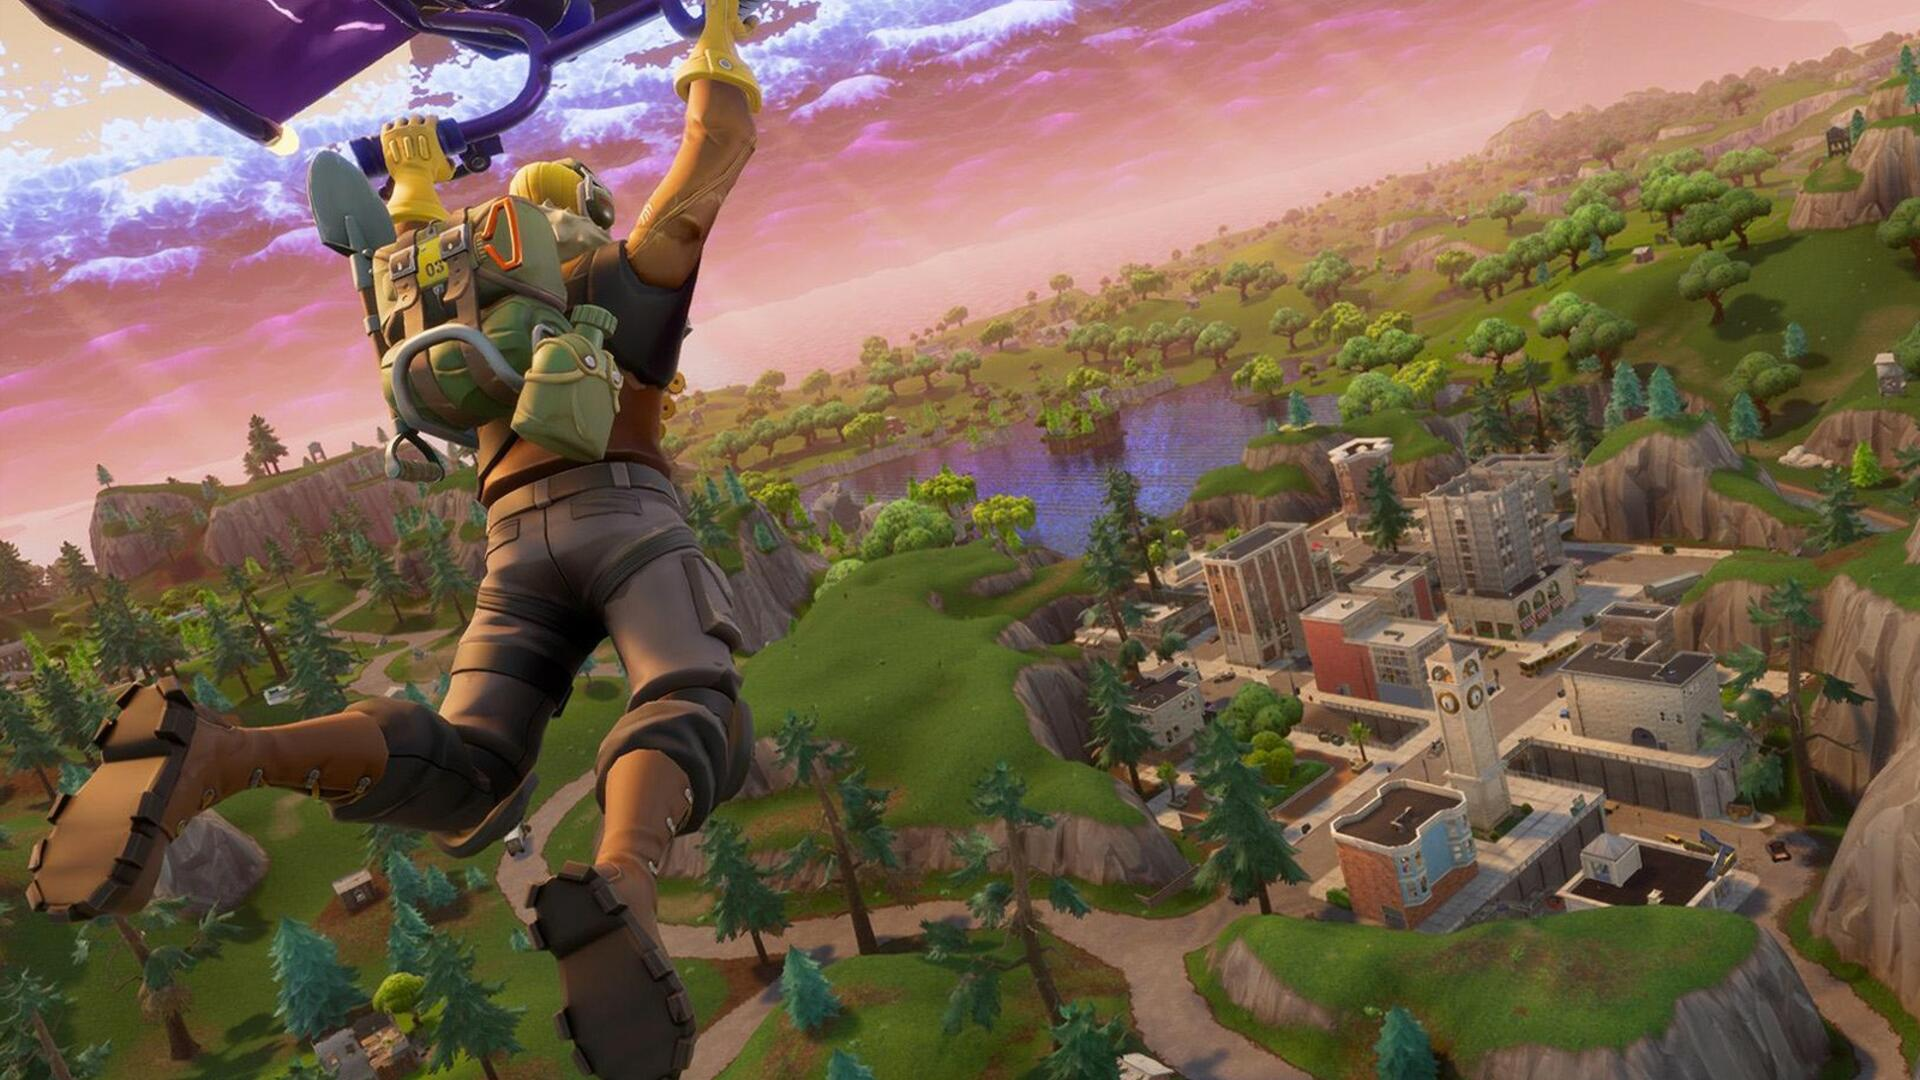 Chinese Game Industry in Turmoil After Government Freeze, Ripples Affecting Everyone from Nintendo to Fortnite